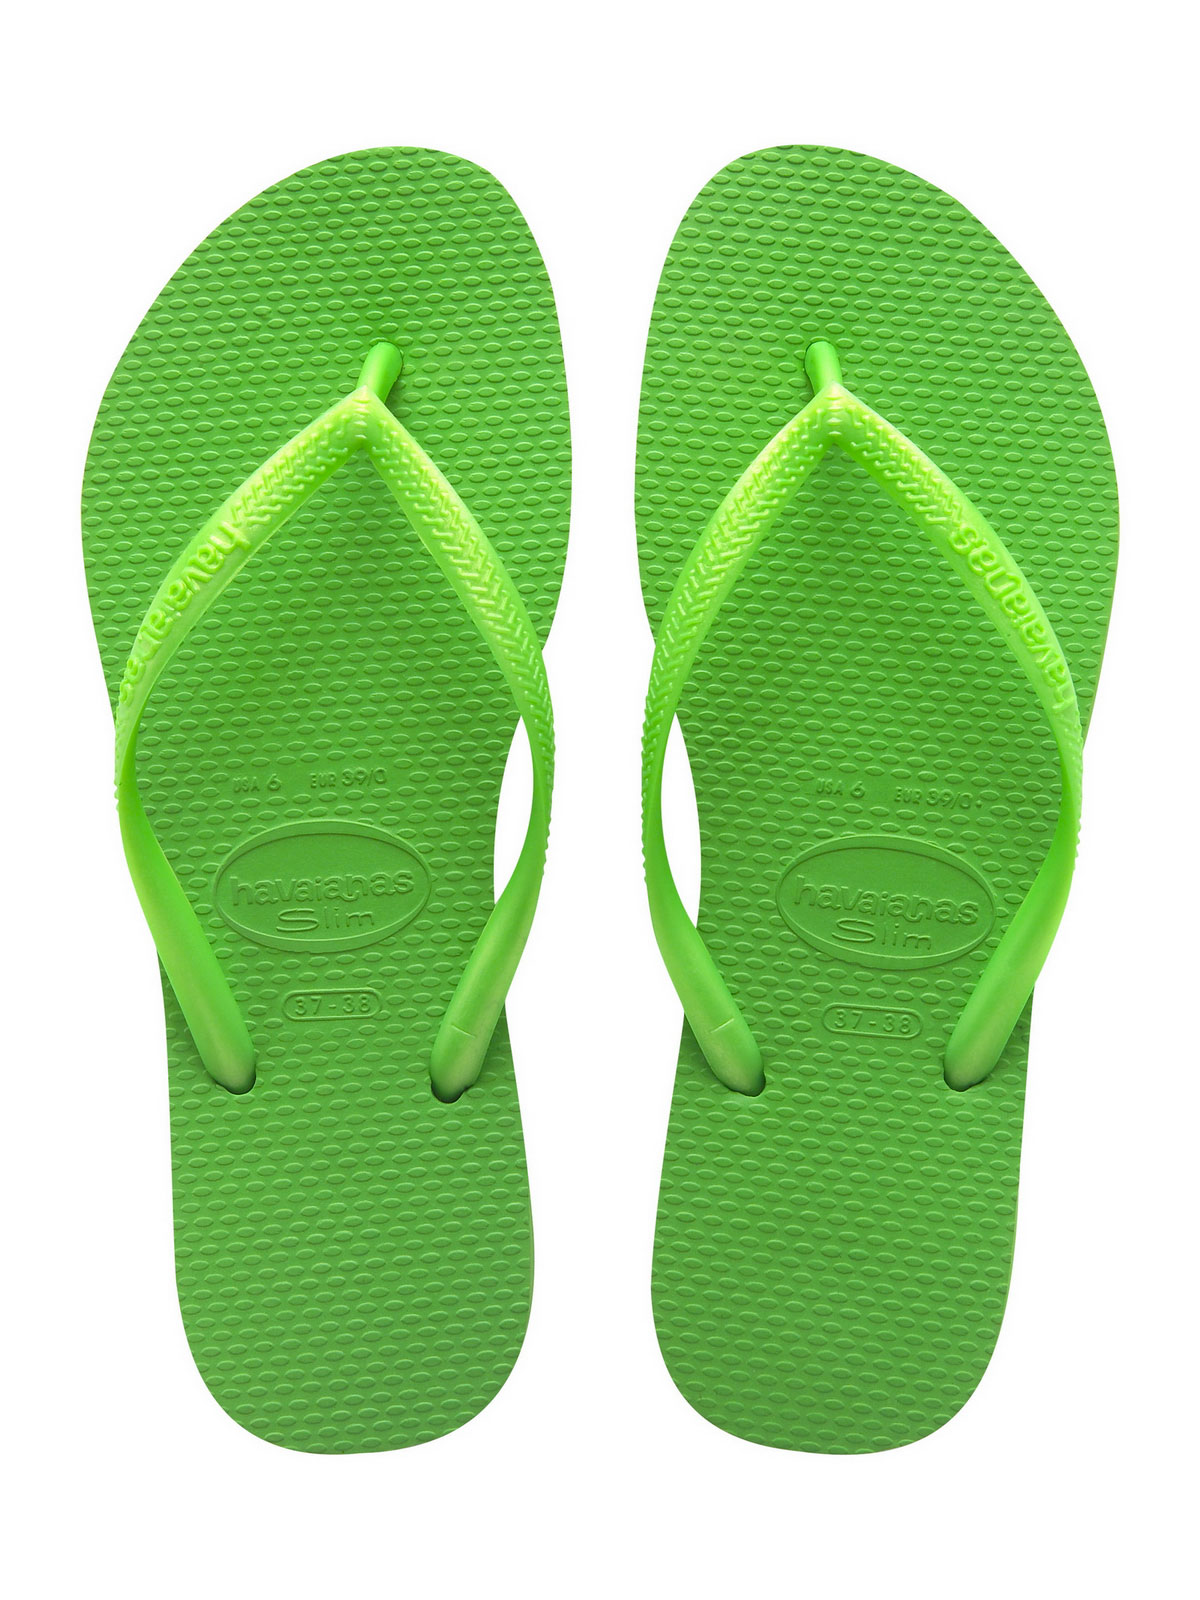 The Havaianas women's flip flops are the summer footwear choice of women around the world thanks to their combination of design and functionality. The ladies flip flops collection shows how the comfort with which the original pairs were created, can be combined with the most stylish designs.